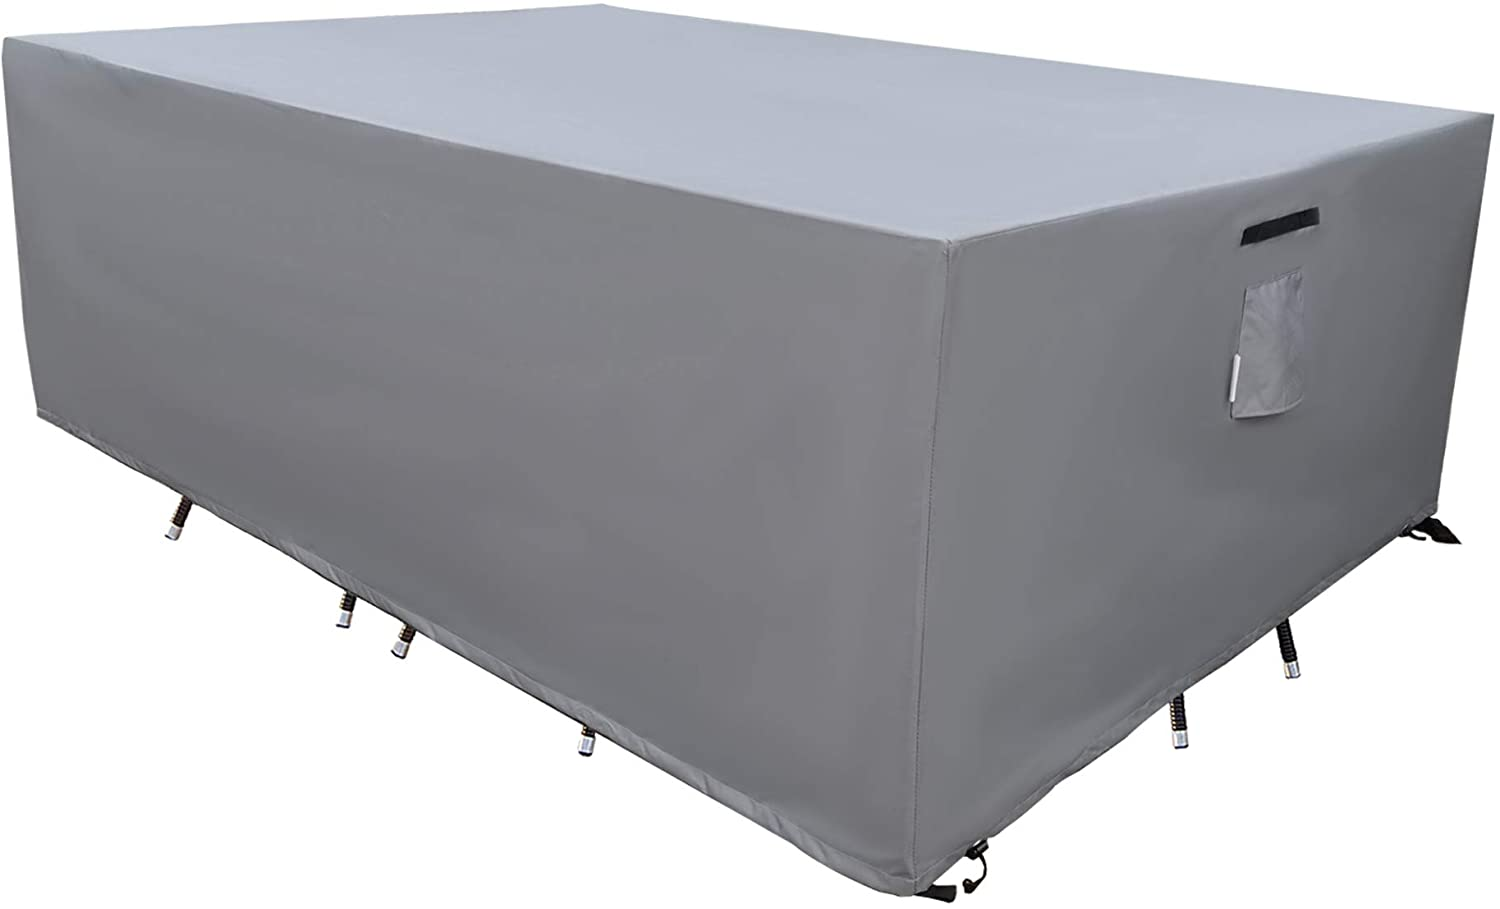 SERHOM Patio Furniture Covers, Waterproof Anti-UV 600D Heavy Duty Durable Table Cover for Outdoor Dining Table, Grey, 74x44x29 : Patio, Lawn & Garden